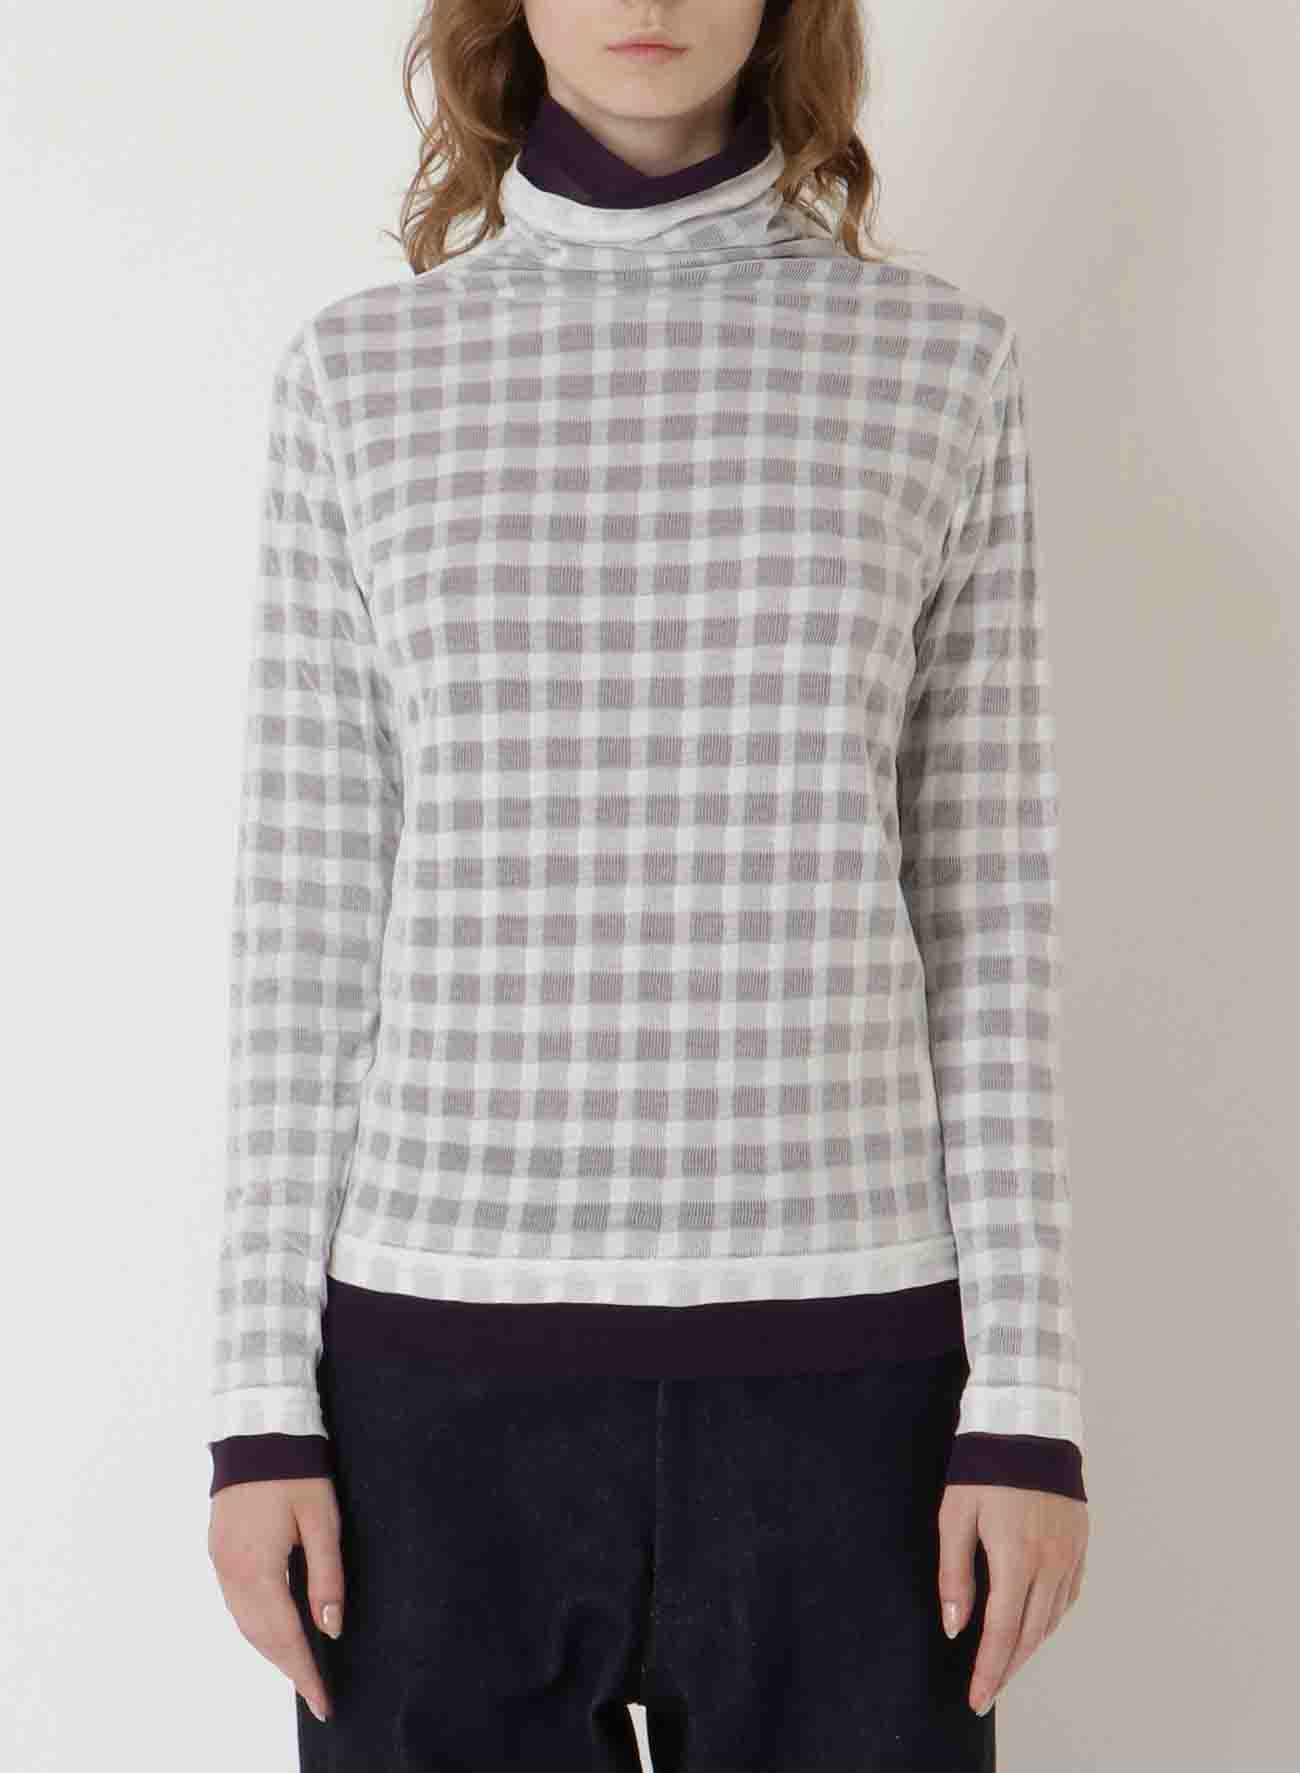 100/2STRONG TWIST CHECKxPOLY TULLE W DOUBLE LAYERED HN LONG SLEEVE T